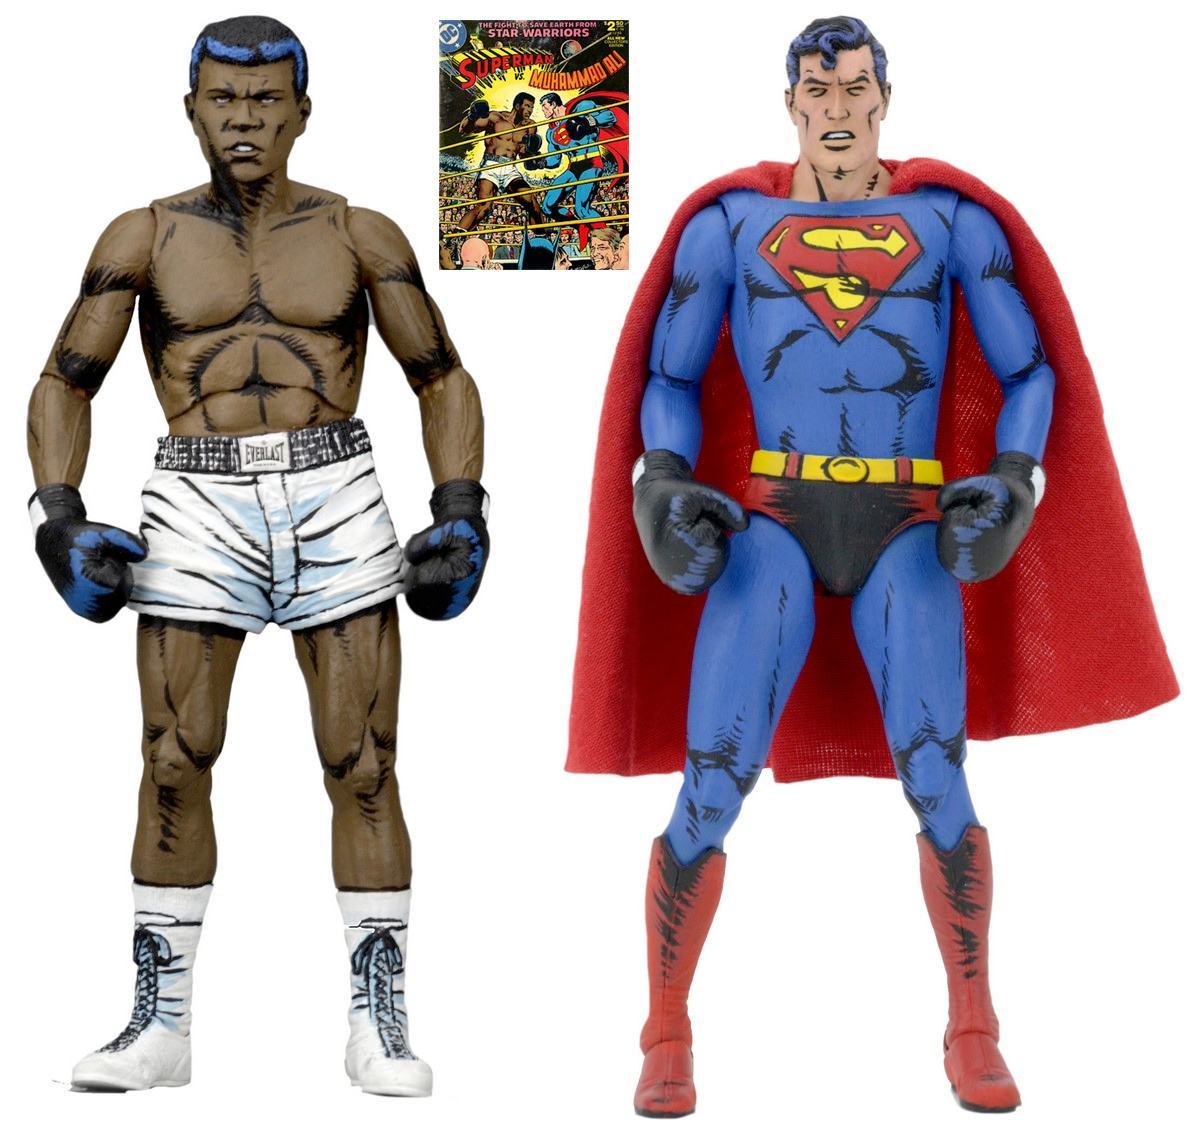 Superman-vs-Muhammad-Ali-DC-Comics-7-Inch-Action-Figures-02